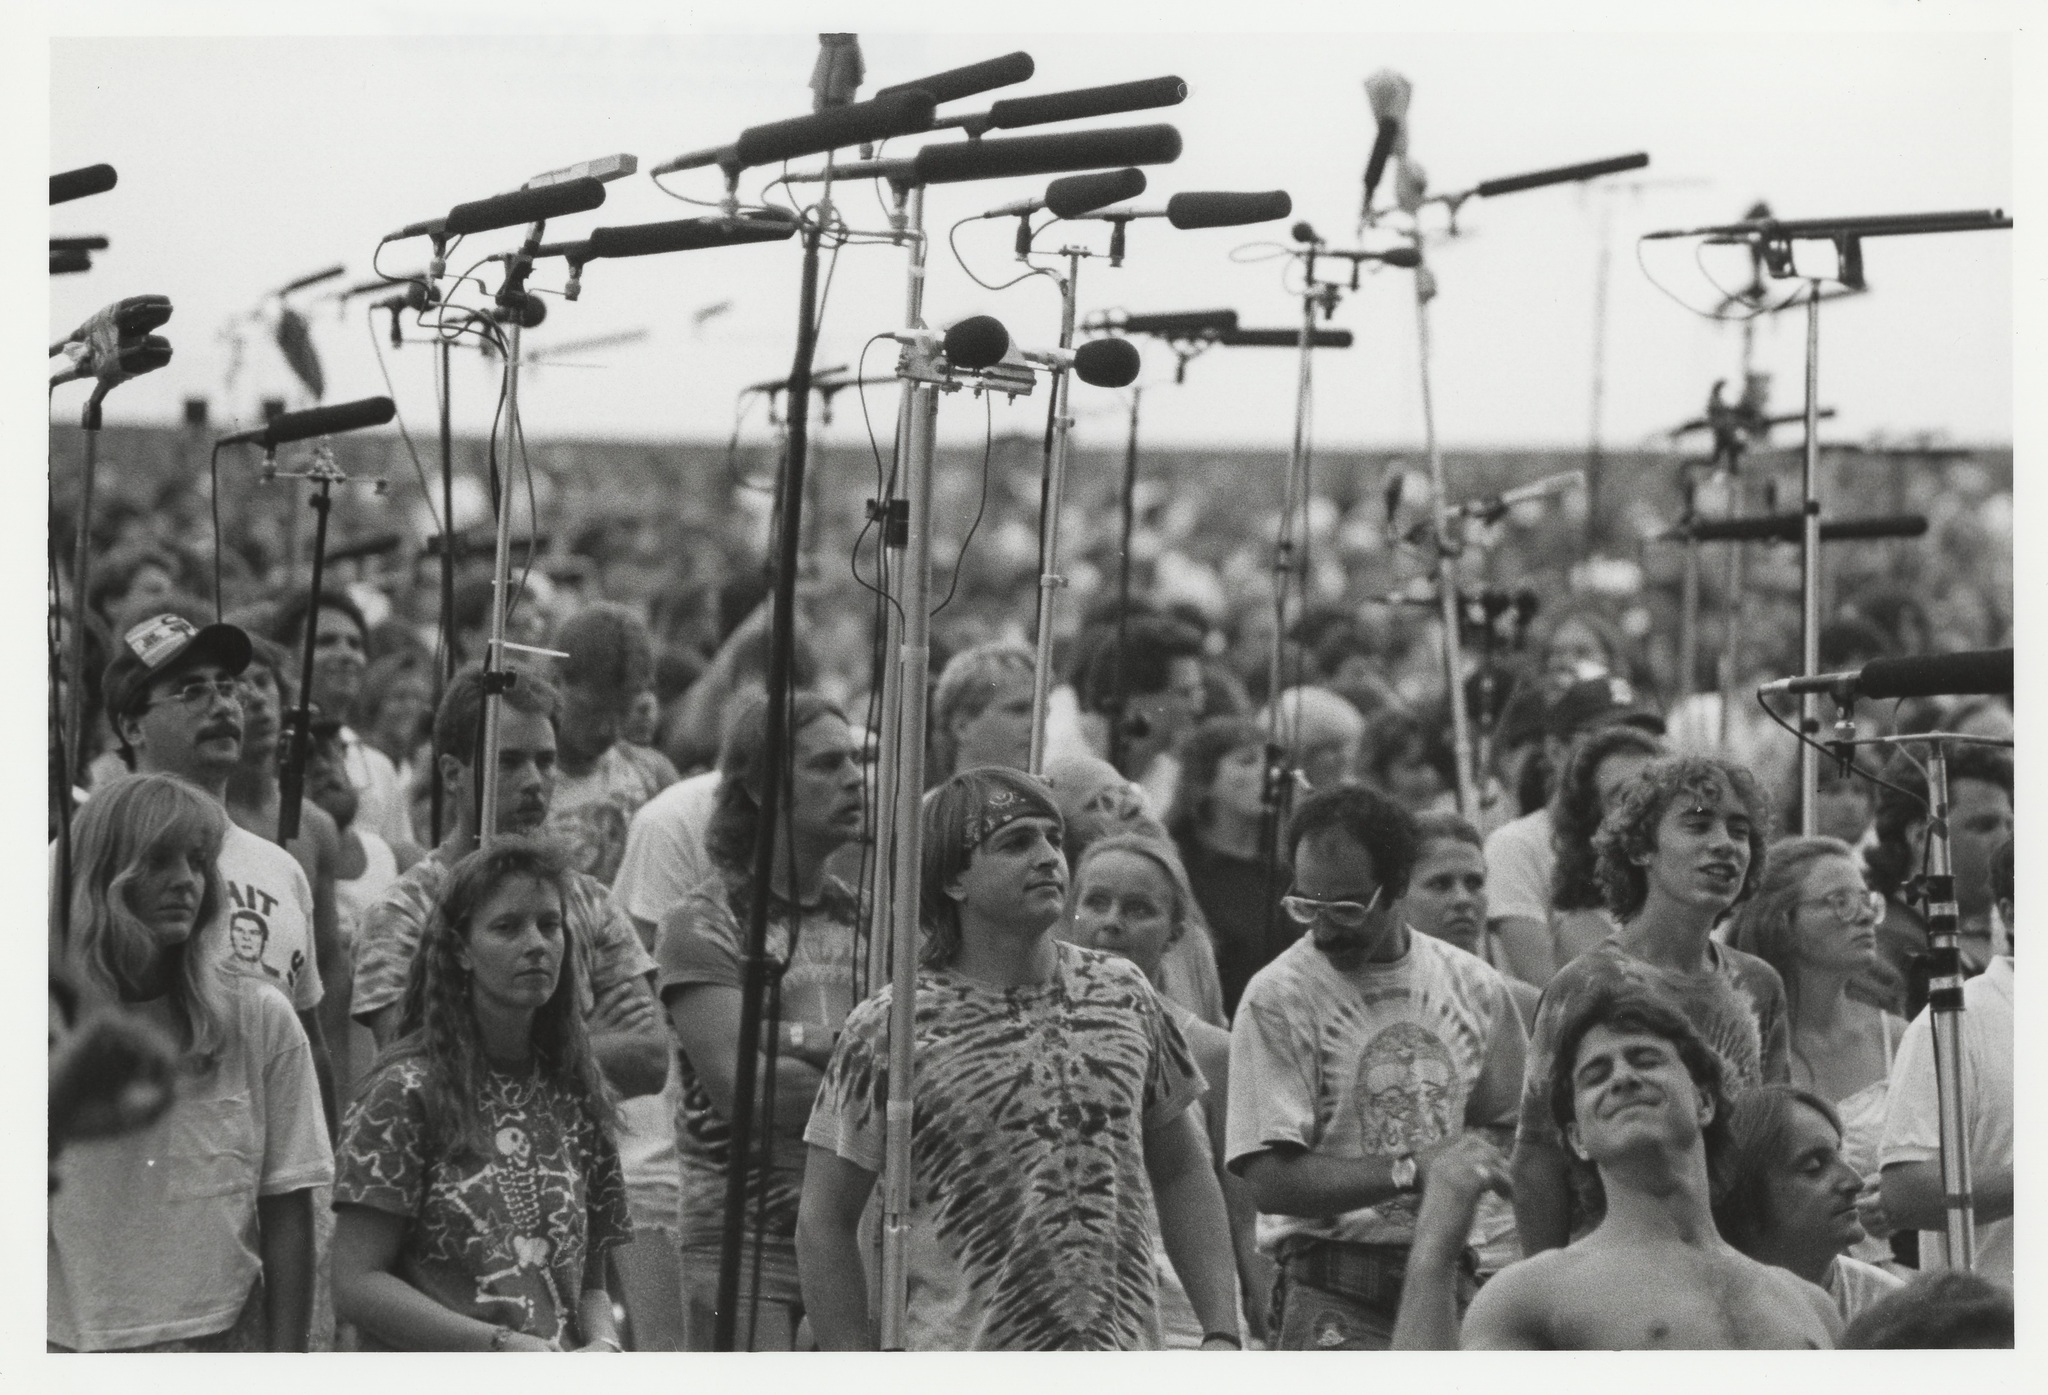 Deadheads in the Taper's Section at an outdoor venue late-1980s.